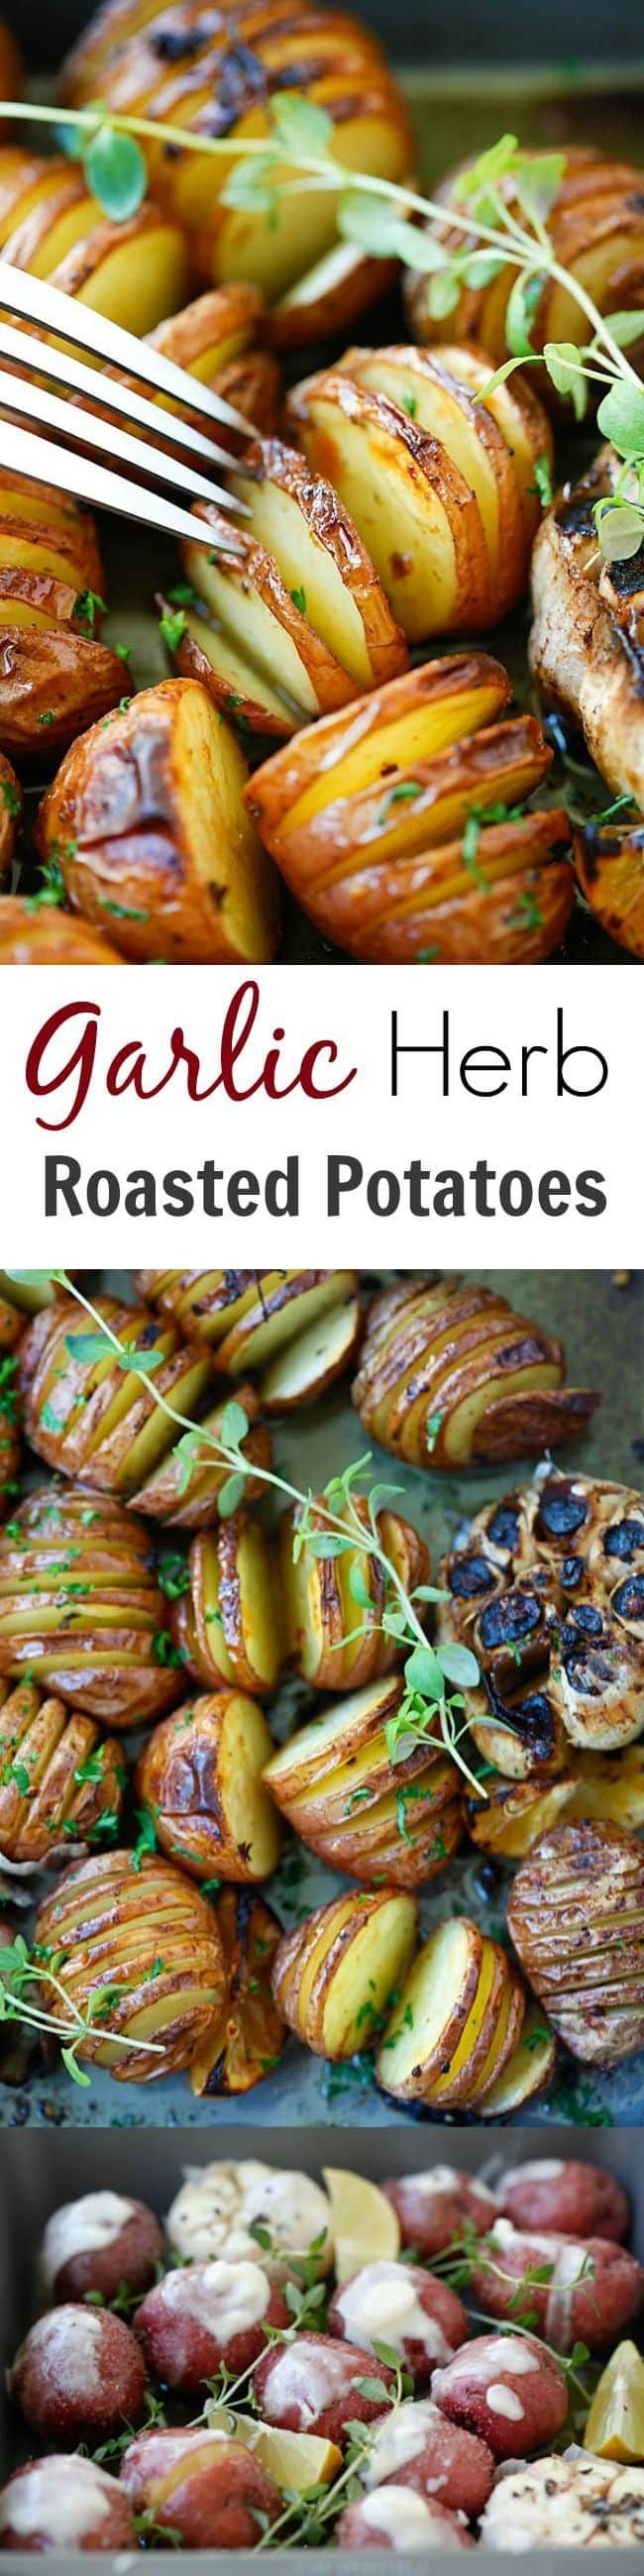 Garlic Herb Roasted Potatoes - baked garlic potatoes with herb, olive oil butter and lemon. The best homemade roasted potatoes recipe ever | rasamalay... - -